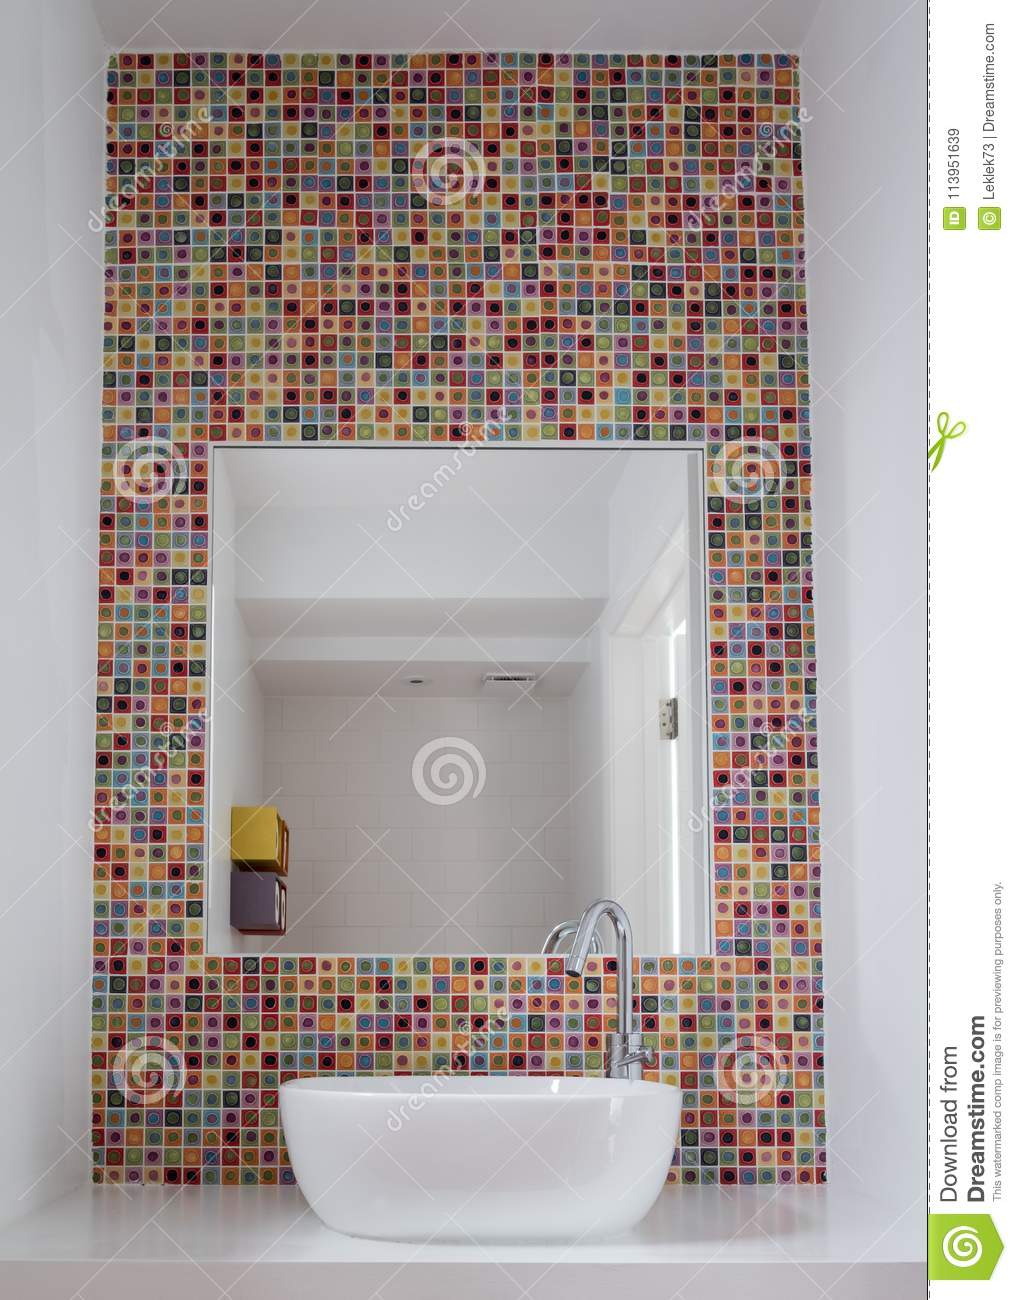 Bathroom Wash Basin With Colorful Glass Mosaic Tiles And Mirror ...